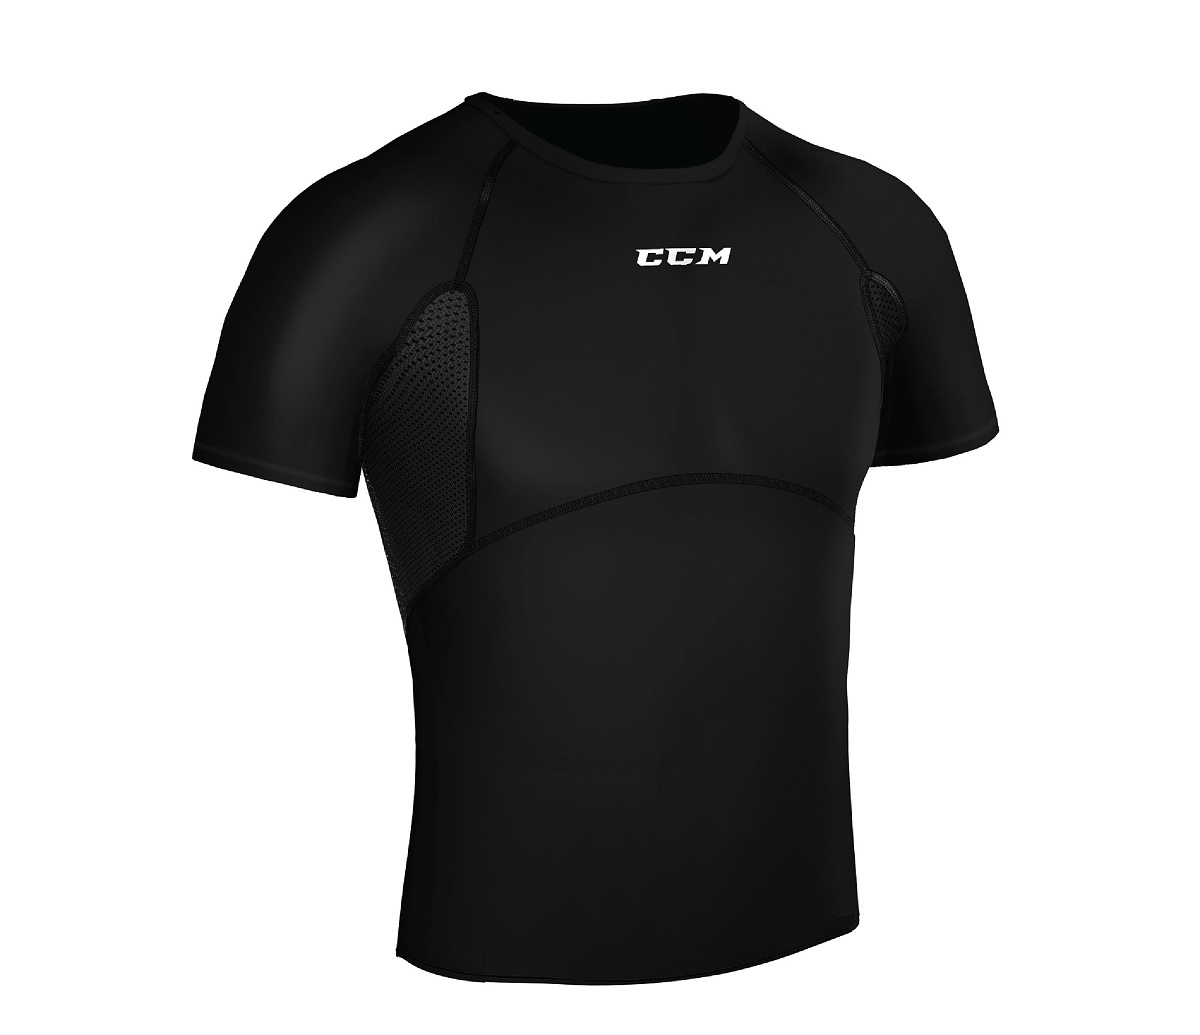 Triko CCM Compression Tee SR, Senior, M